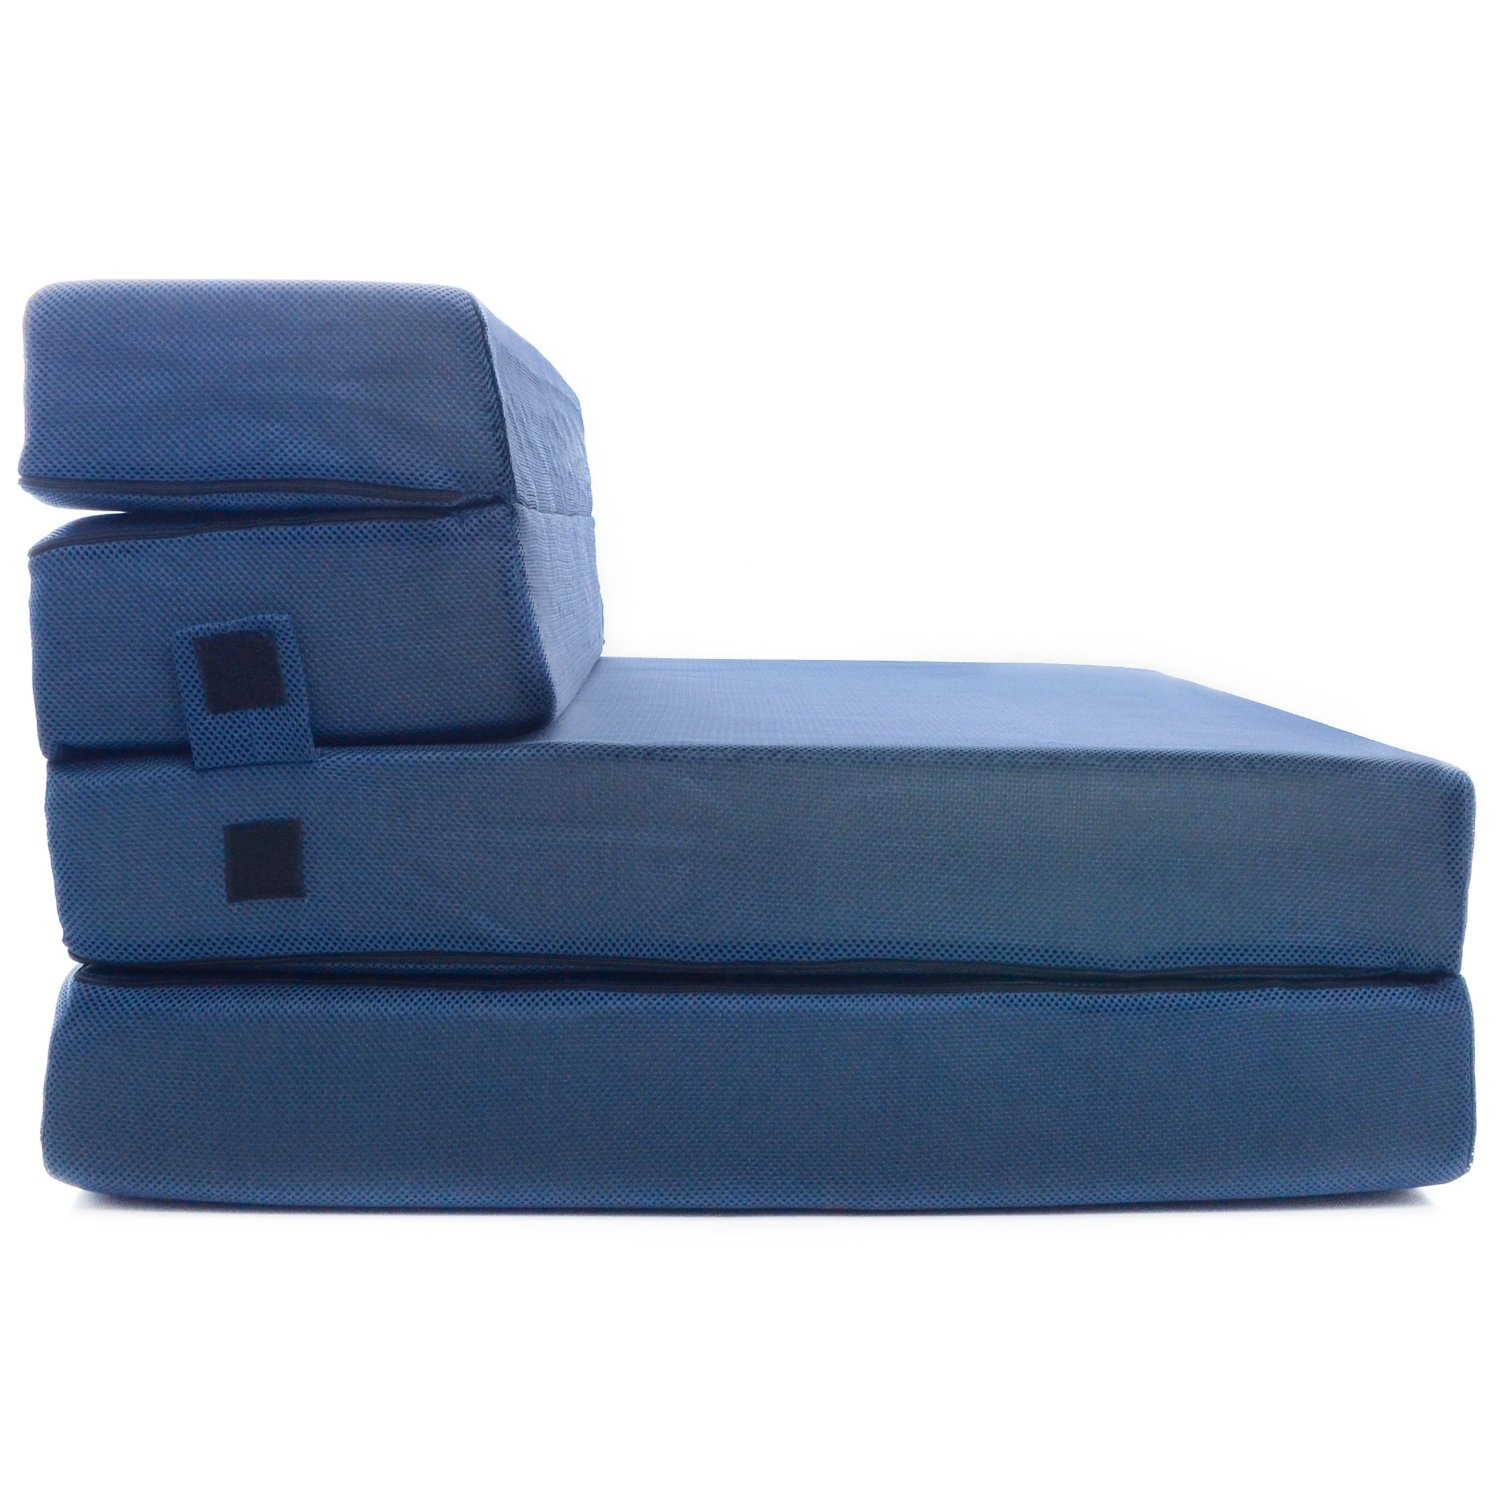 Tri Fold Foam Folding Mattress And Sofa Bed Queen